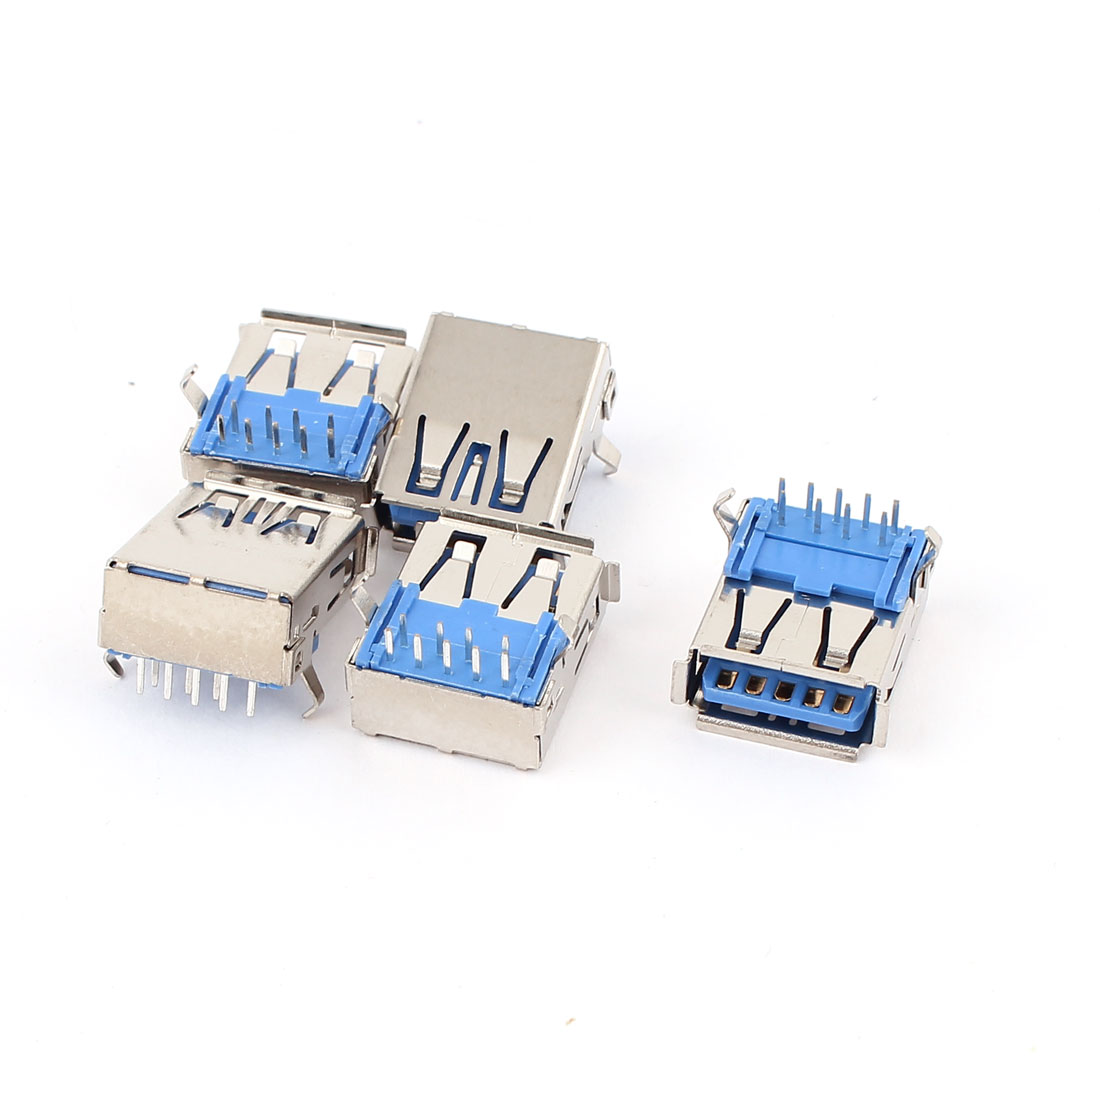 5Pcs 9 Pin 90 Degree Panel Mount USB3.0 Type A Female Port Jack Socket Connector